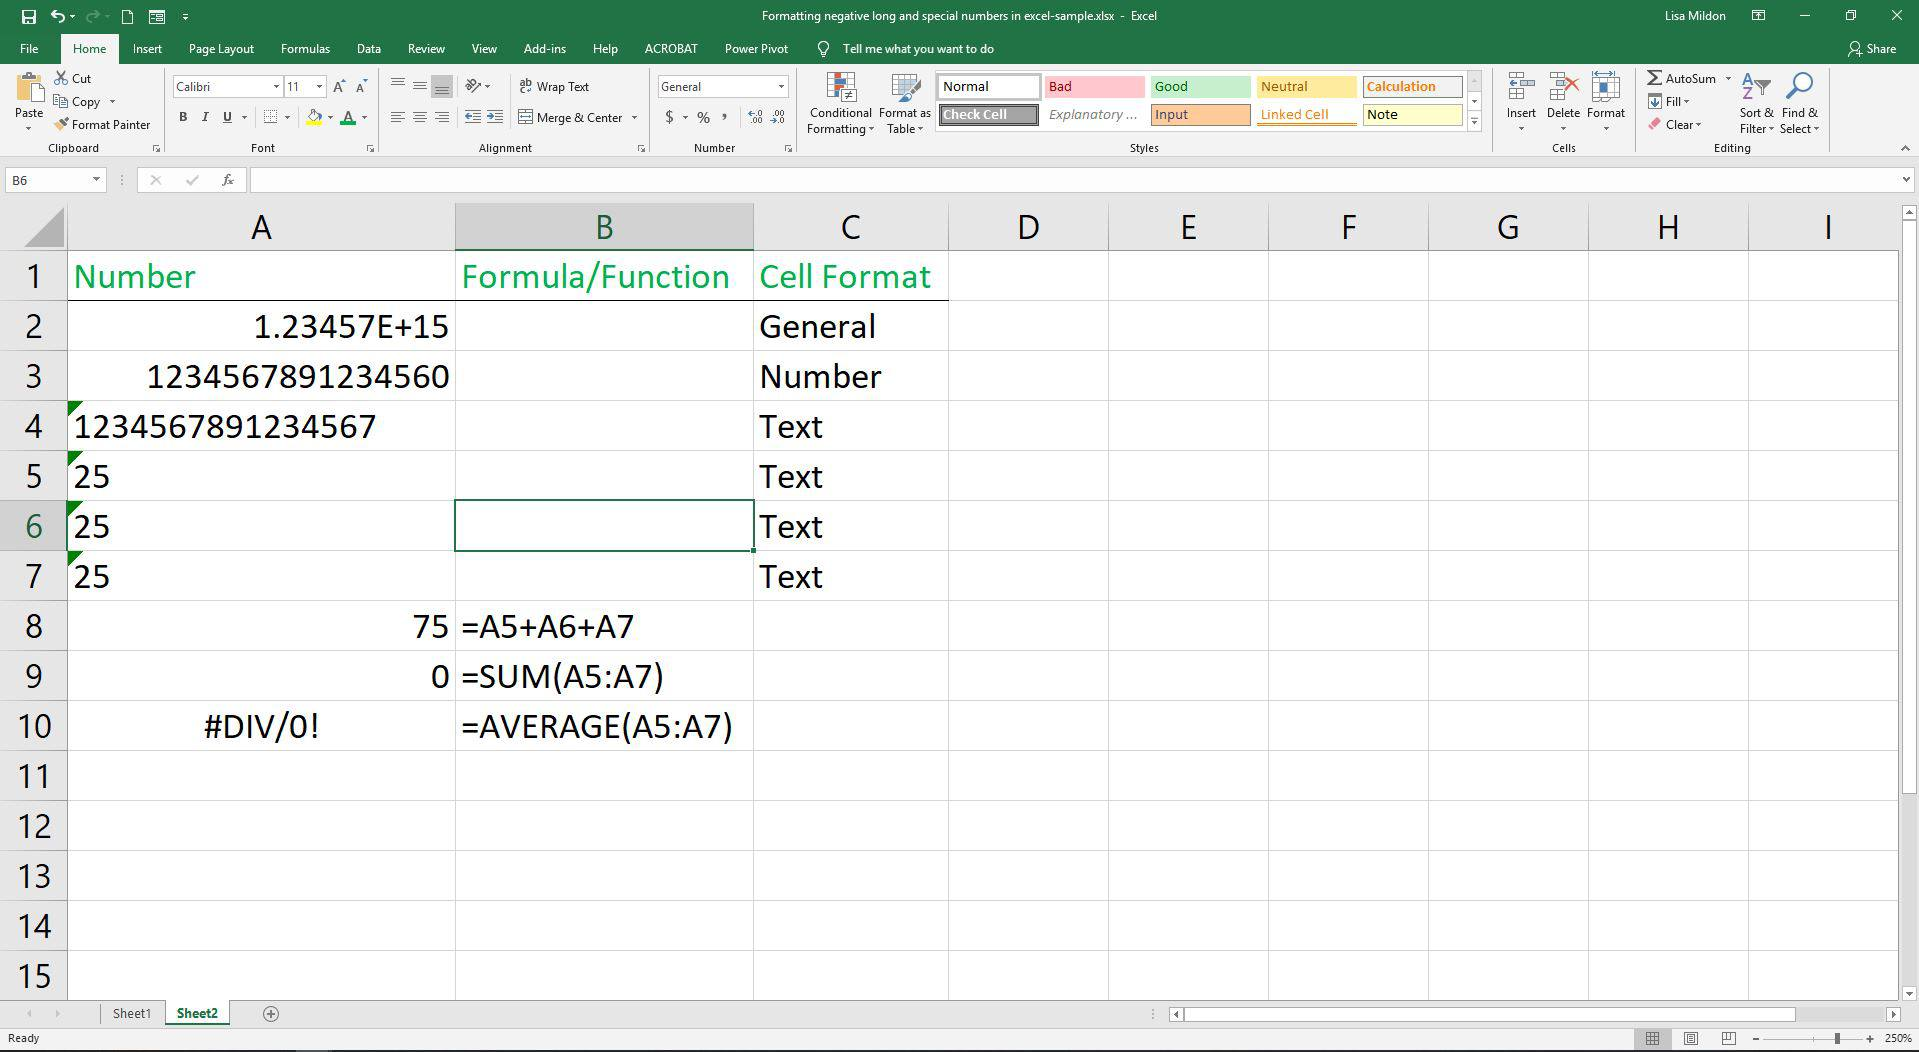 Formatting Negative Long And Special Numbers In Excel